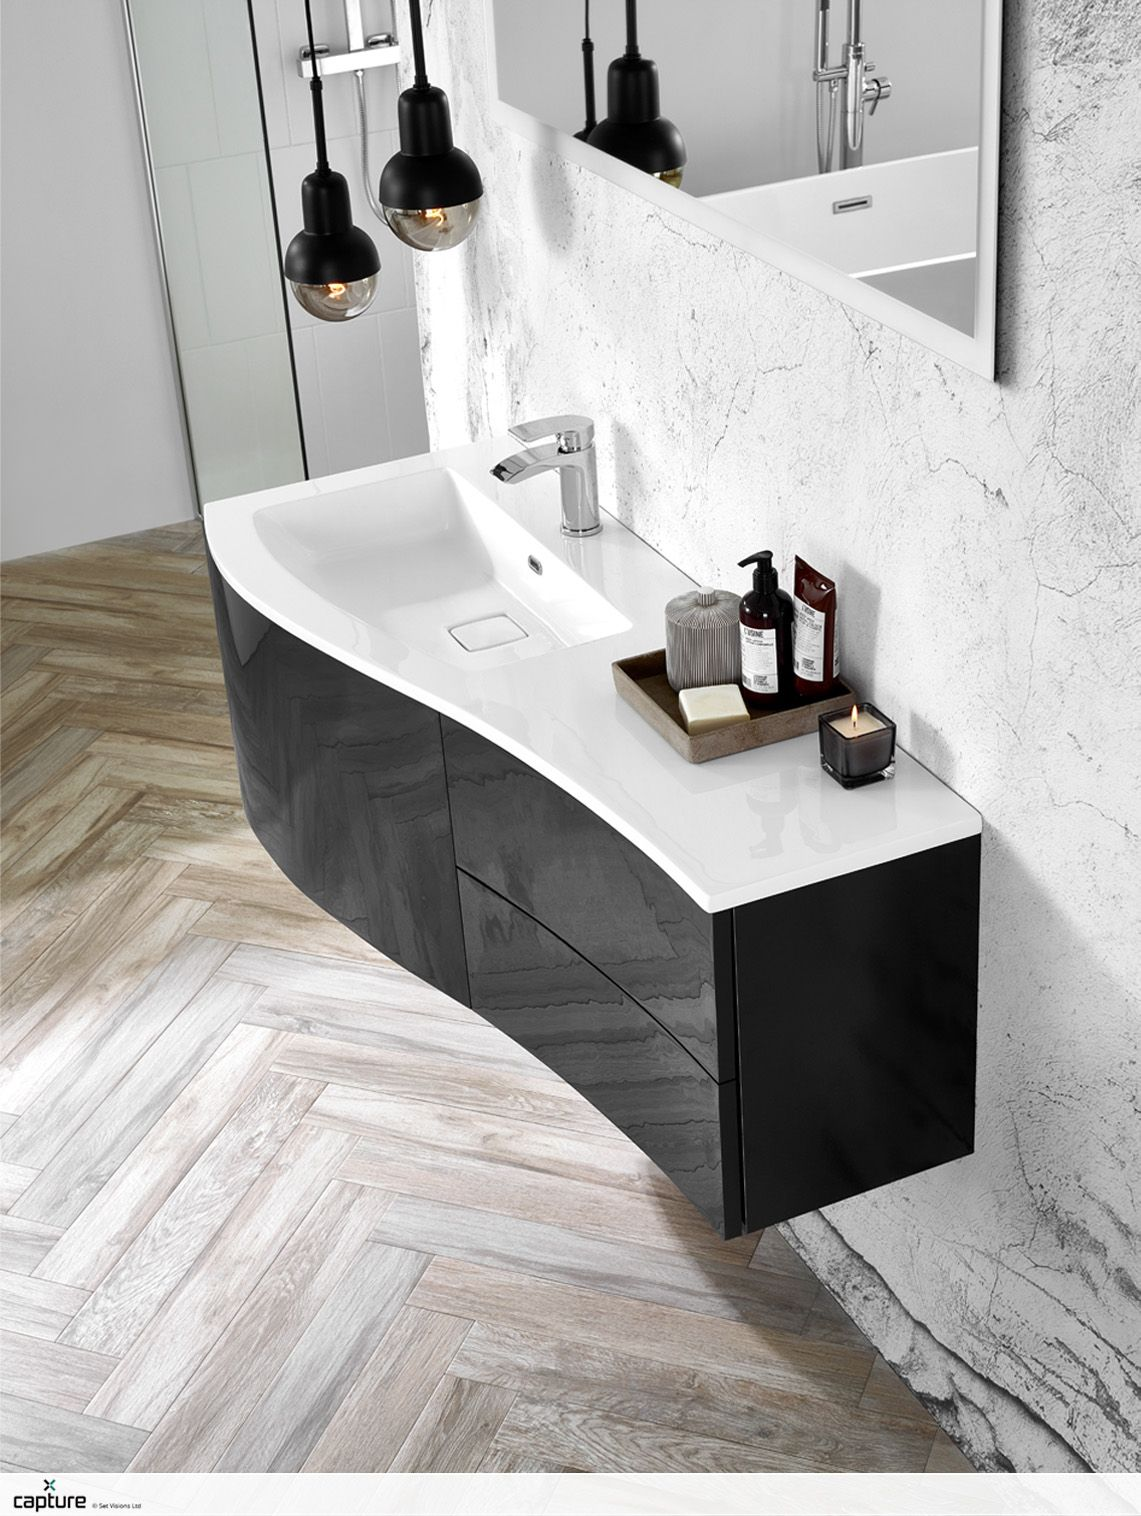 The Trend Is Key To This Tactile Bathroom With